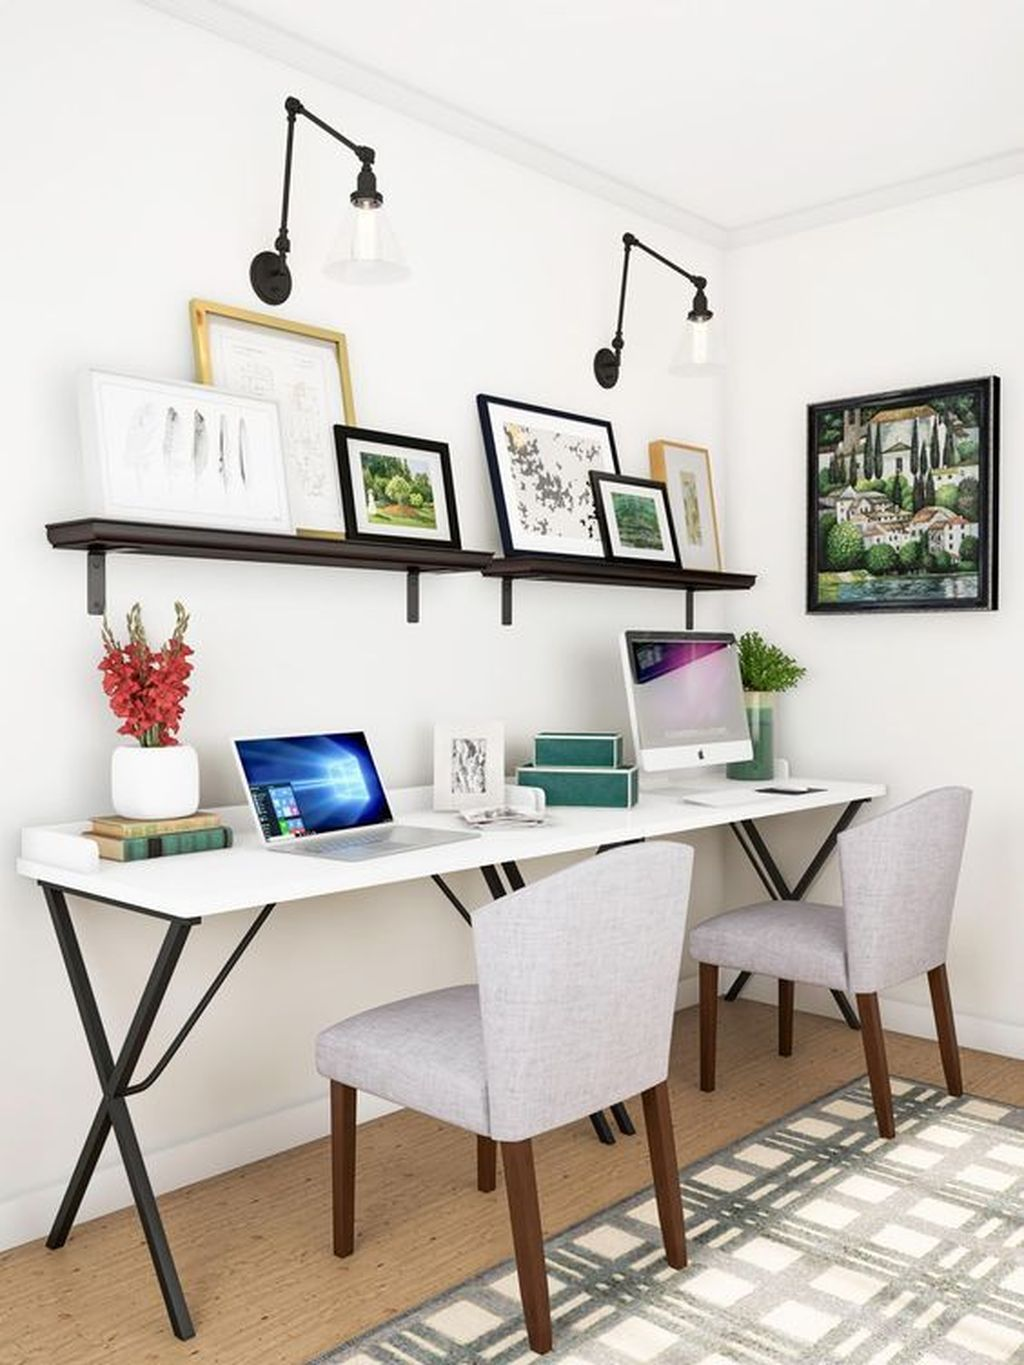 Admirable Modern Home Office Design Ideas That You Like 21